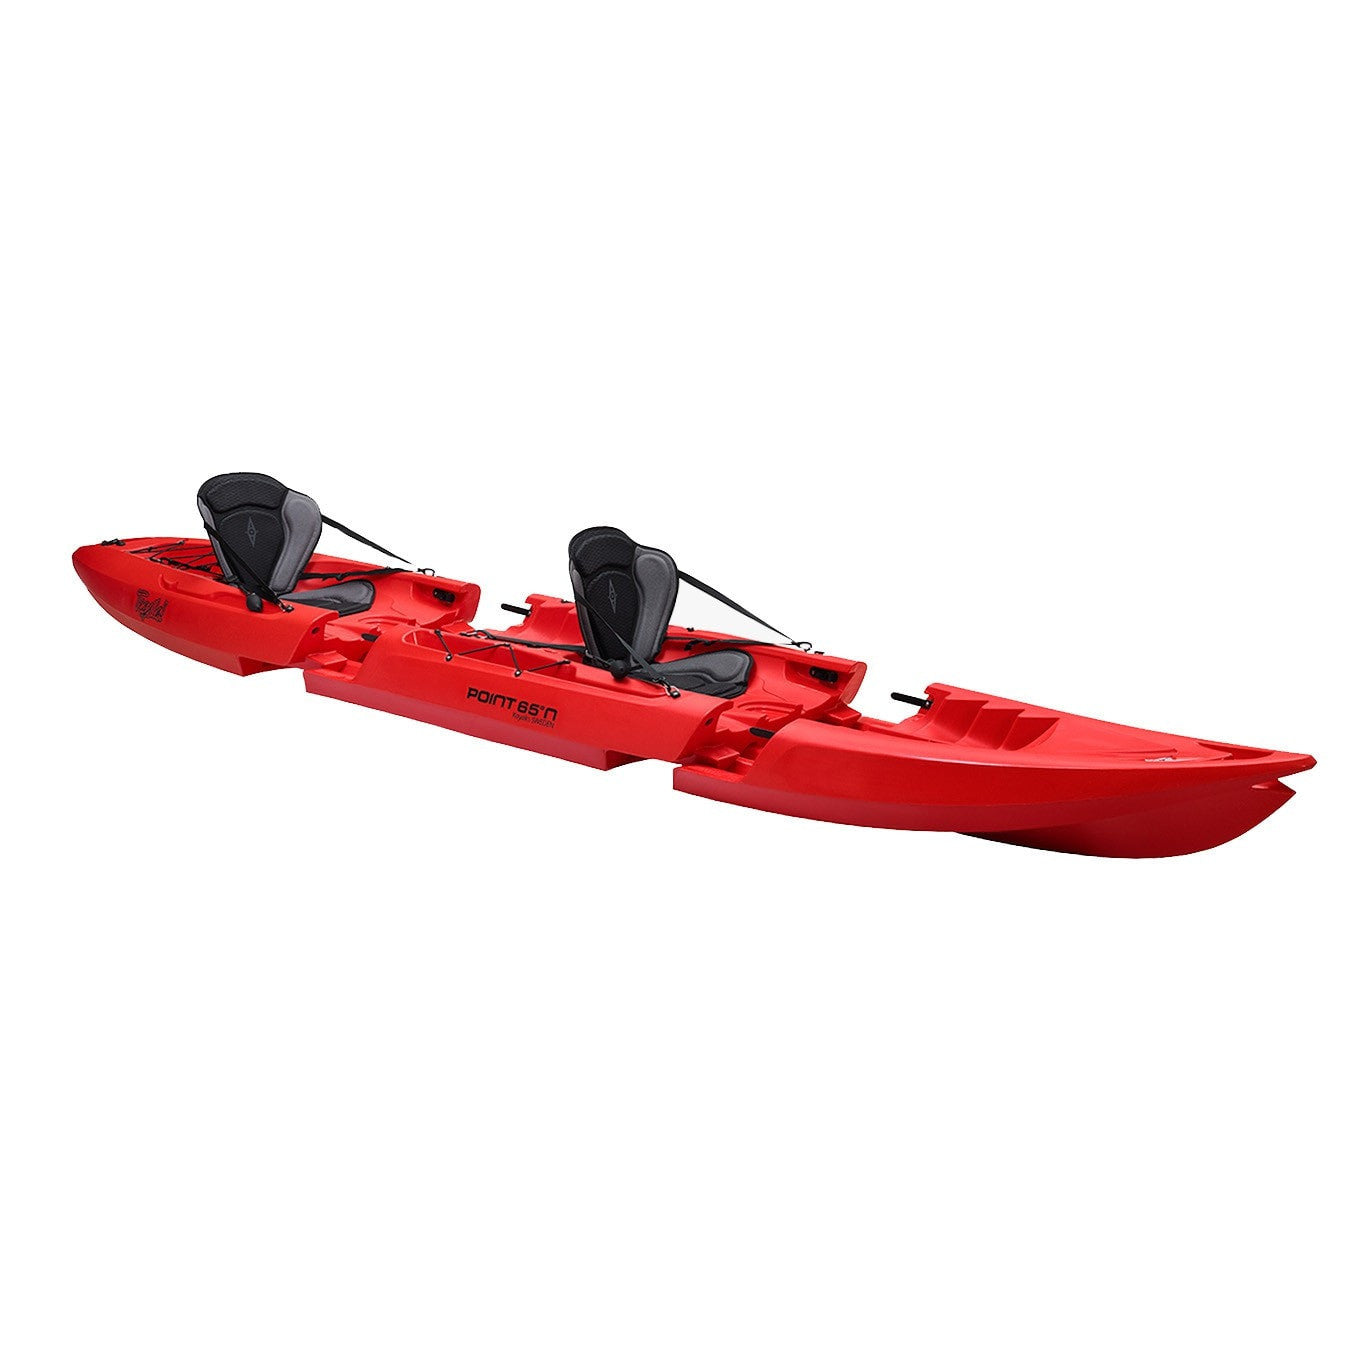 Point 65 Tequila! GTX Tandem Modular Kayak - Red - Kayak Creek